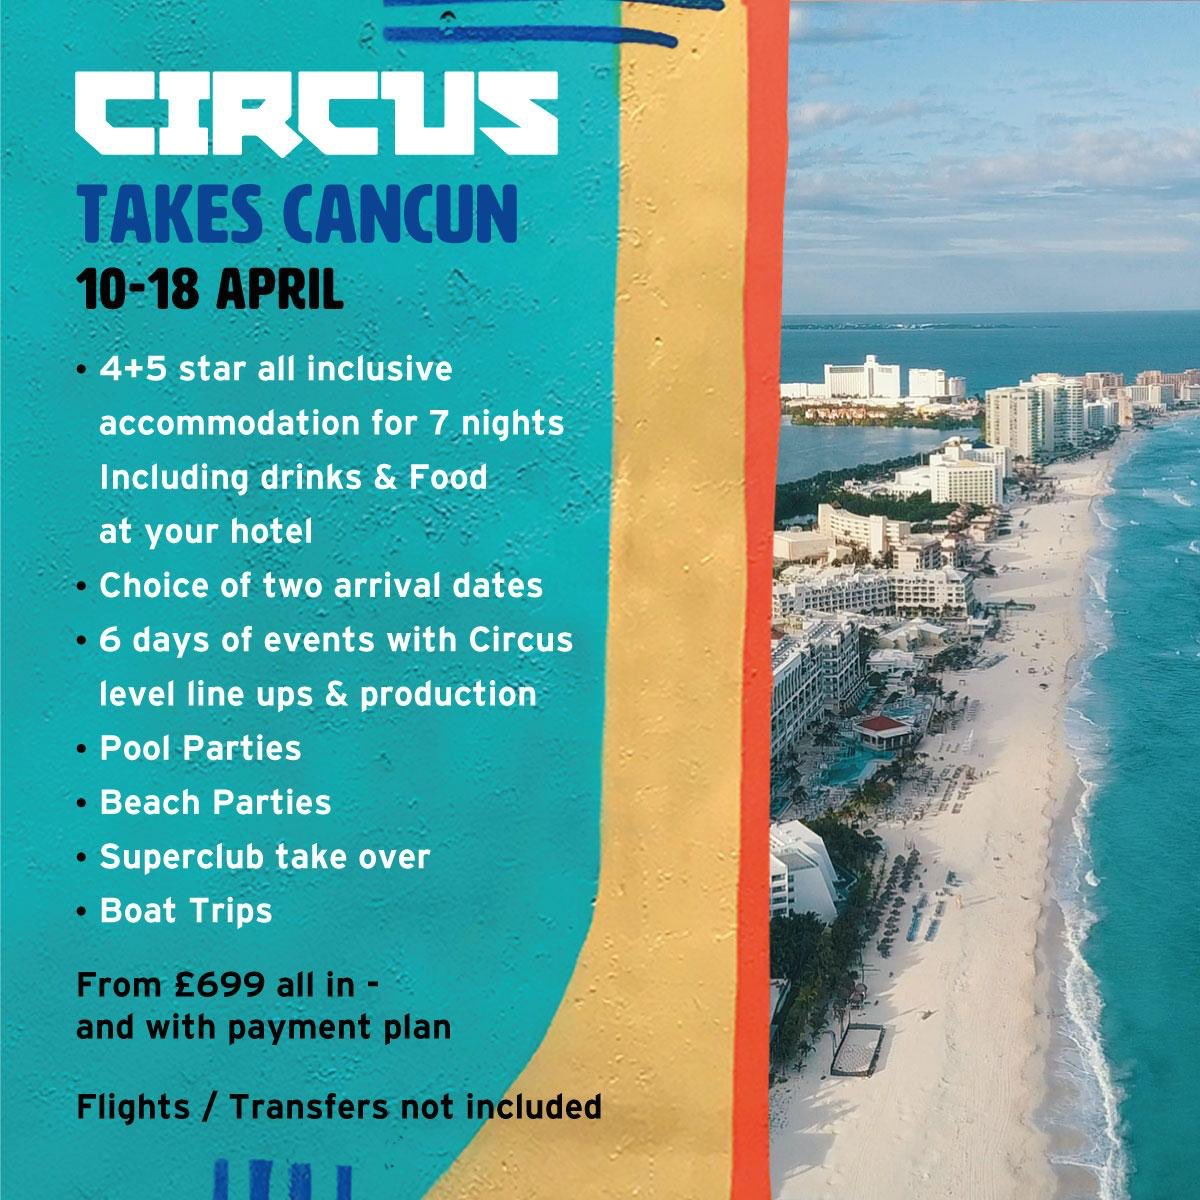 🚨 COMPETITION 🚨 @CIRCUSmusic are heading to Cancun! 🇲🇽   To celebrate we are giving away TWO tickets to ANY of their UK or EUROPE gigs!   To enter head to this link - https://t.co/PBpP33sPbK https://t.co/ng5M6I58G6